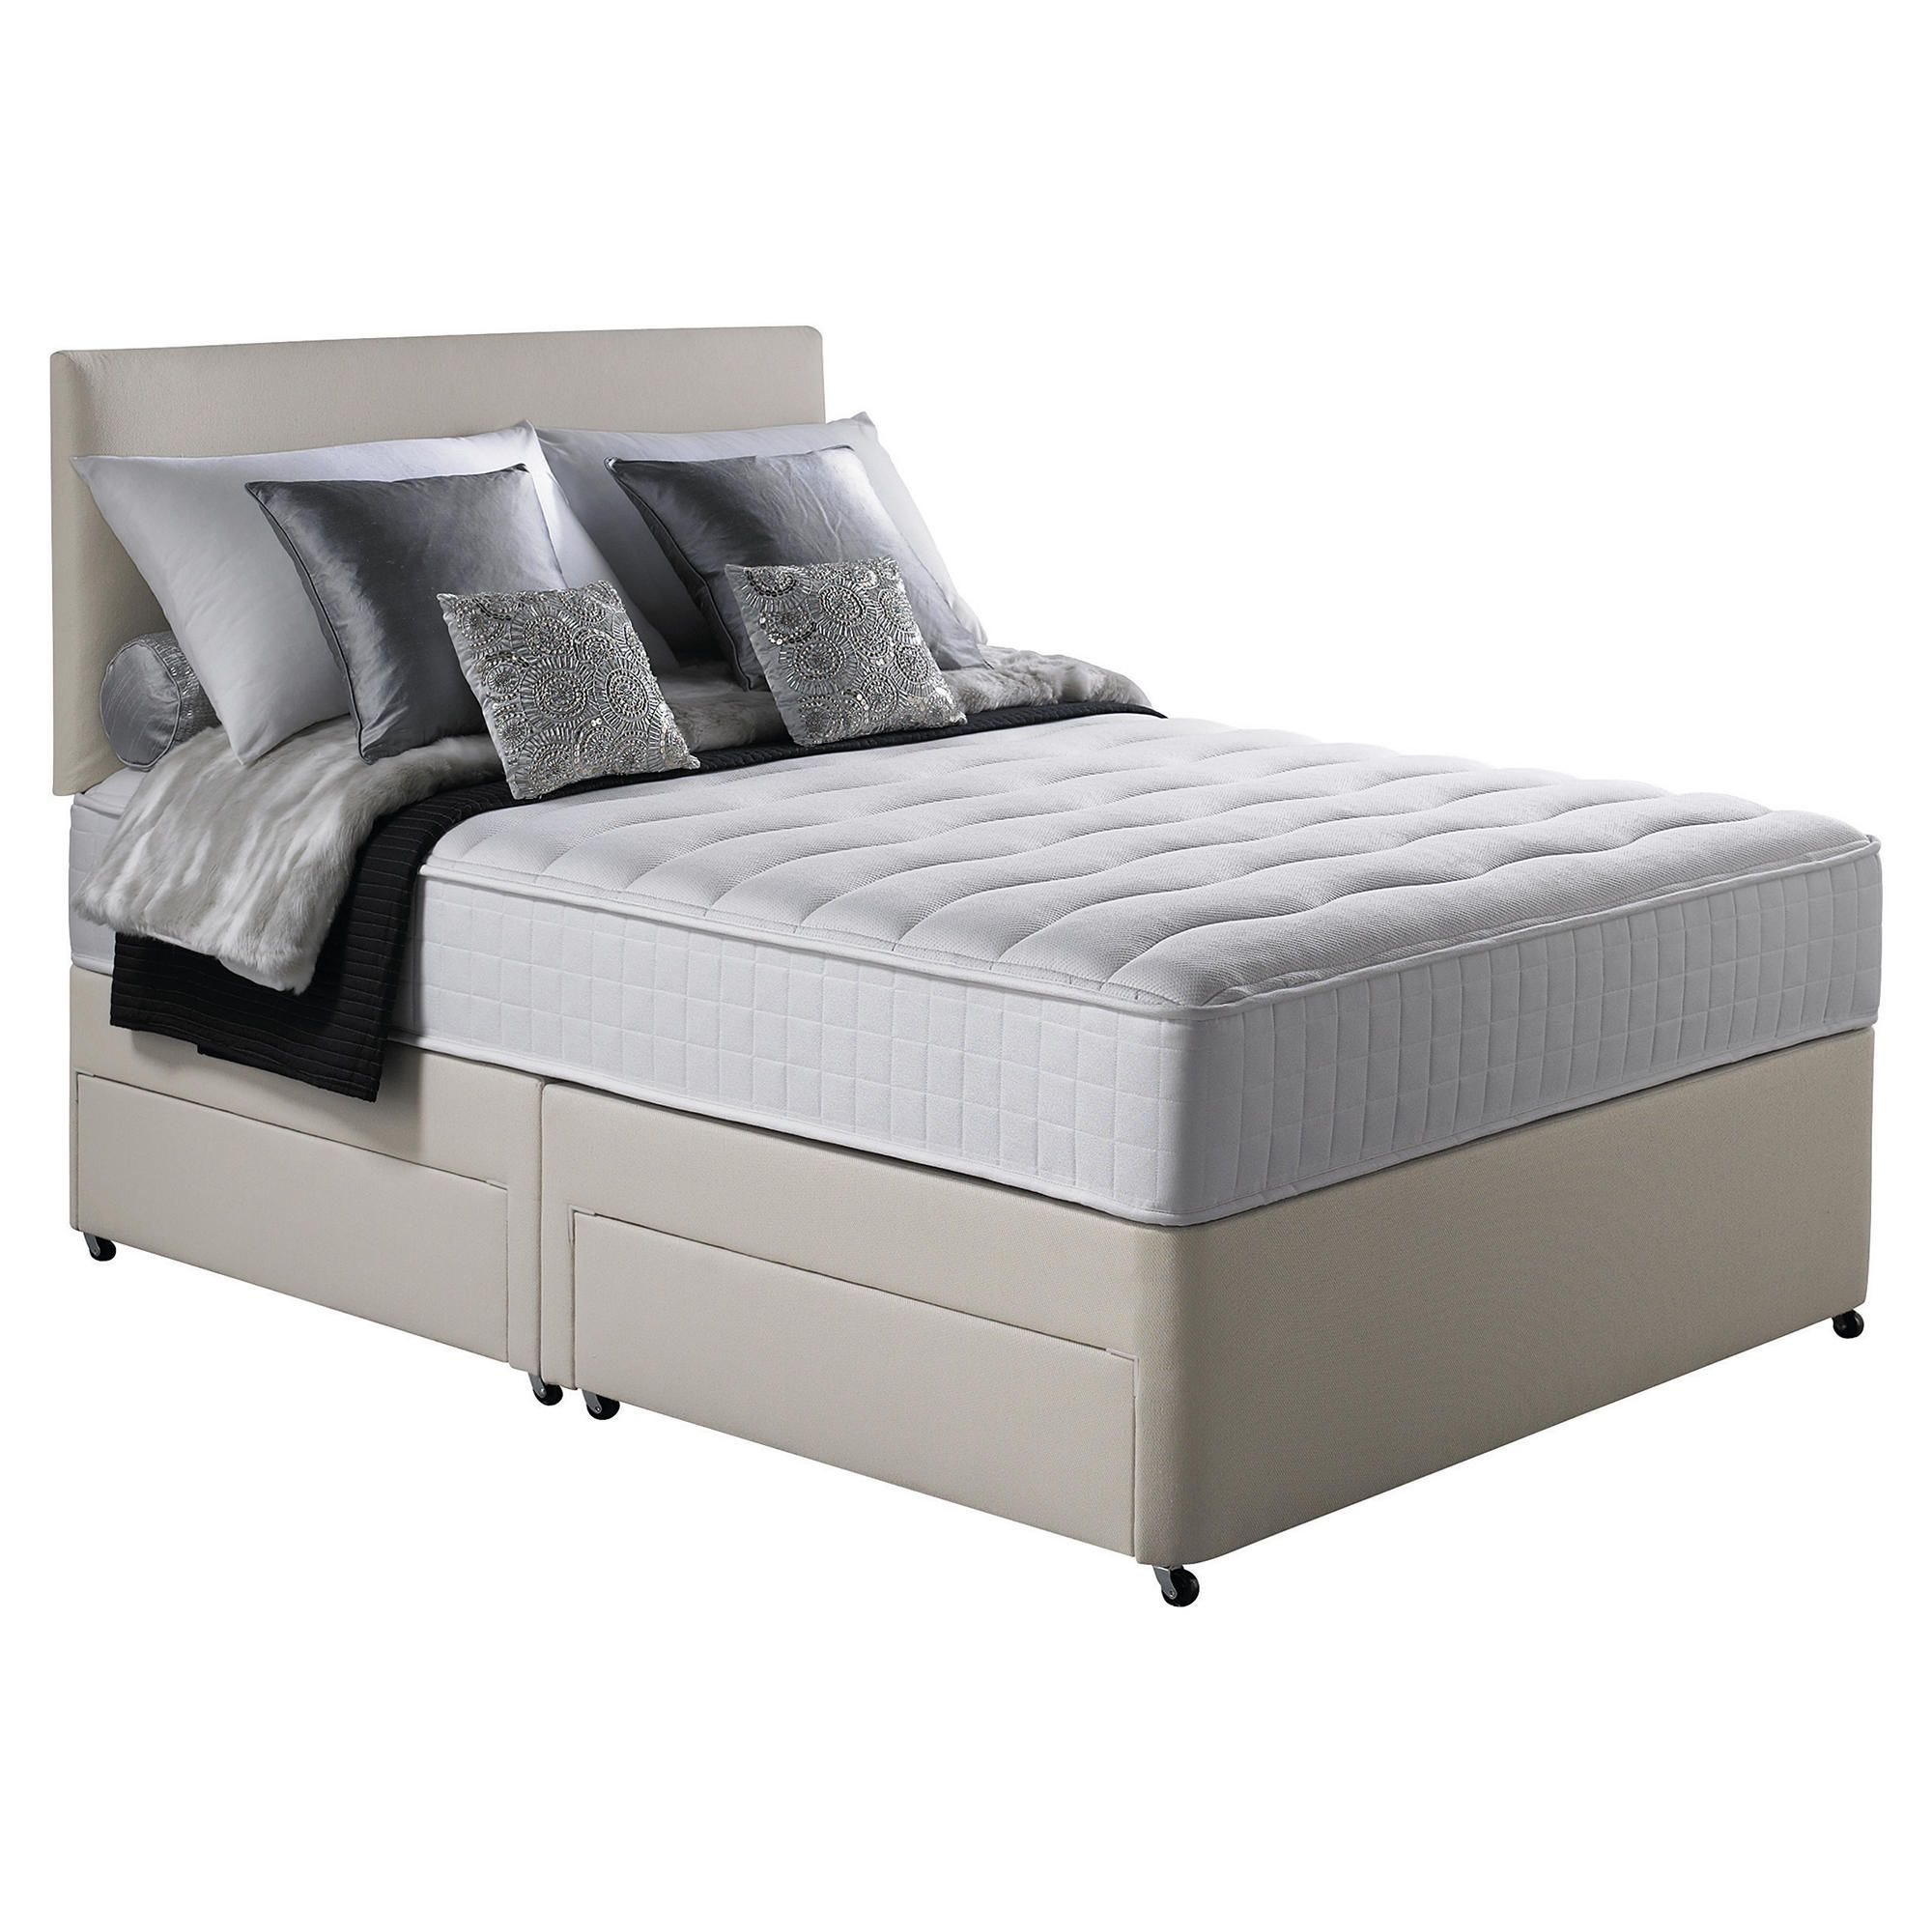 Silentnight Pocket Essentials Memory Foam King Non Storage Divan Bed. at Tesco Direct